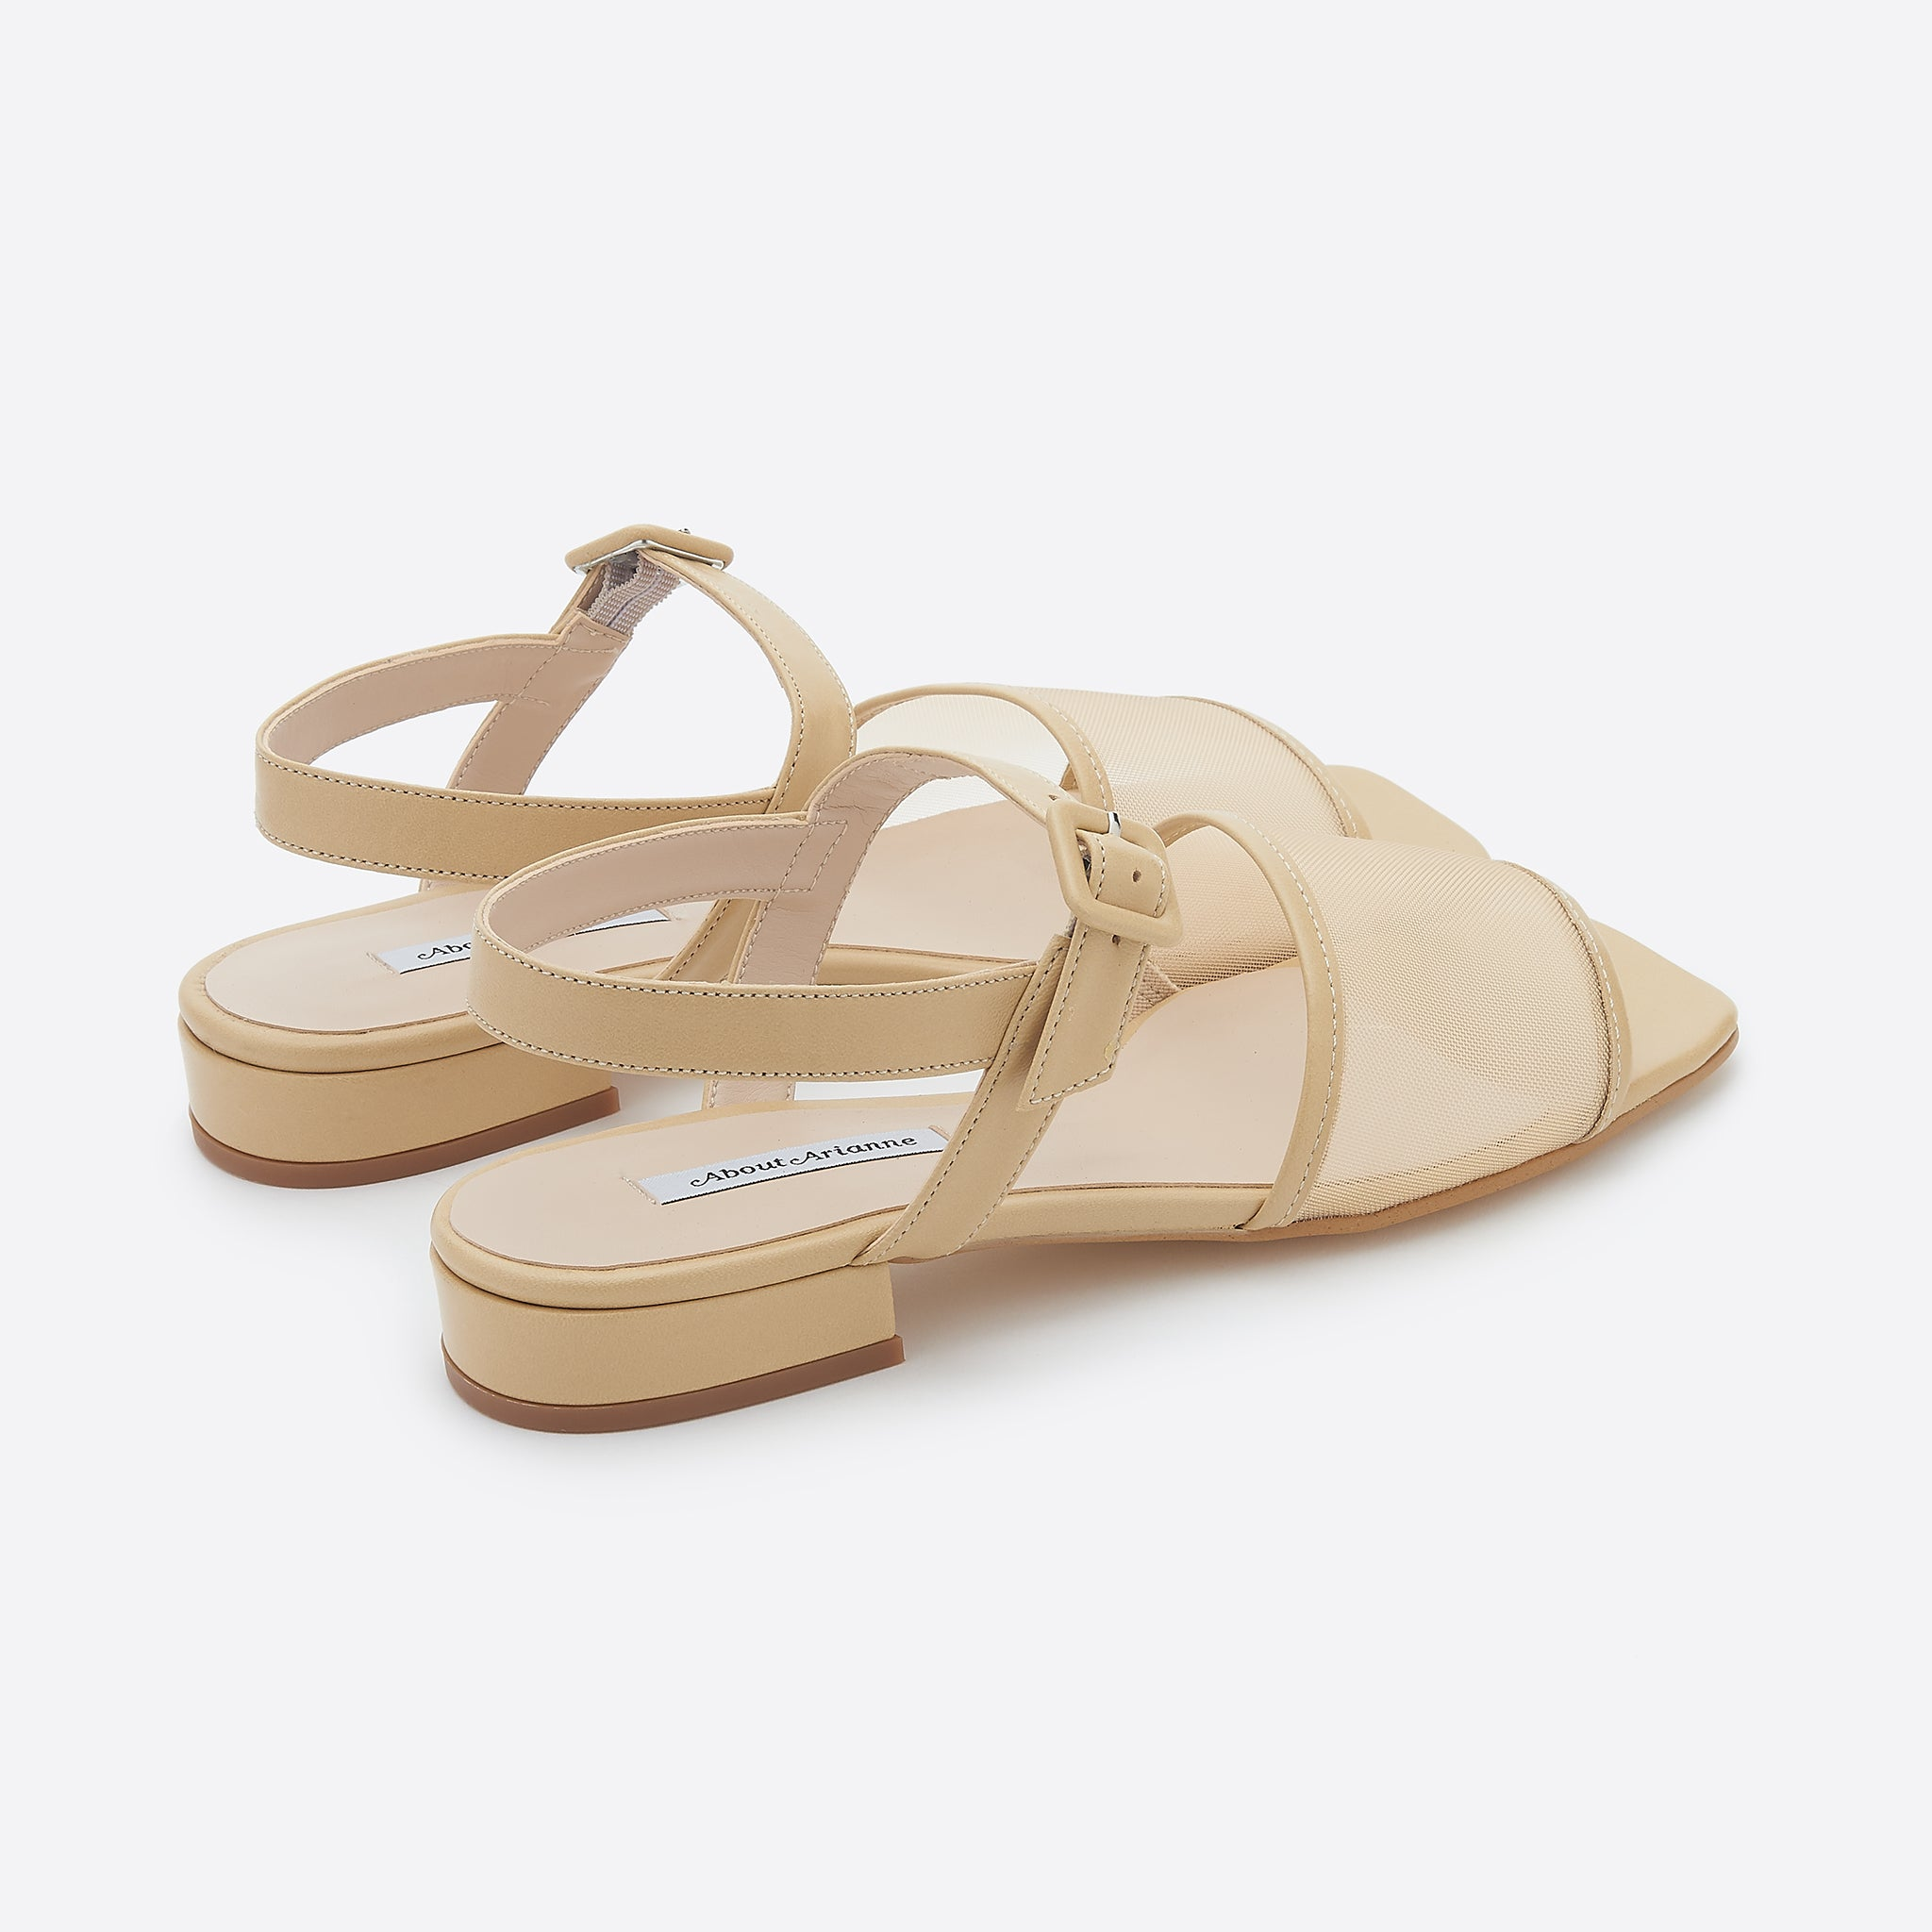 About Arianne Marini Mesh Sandal in Beige